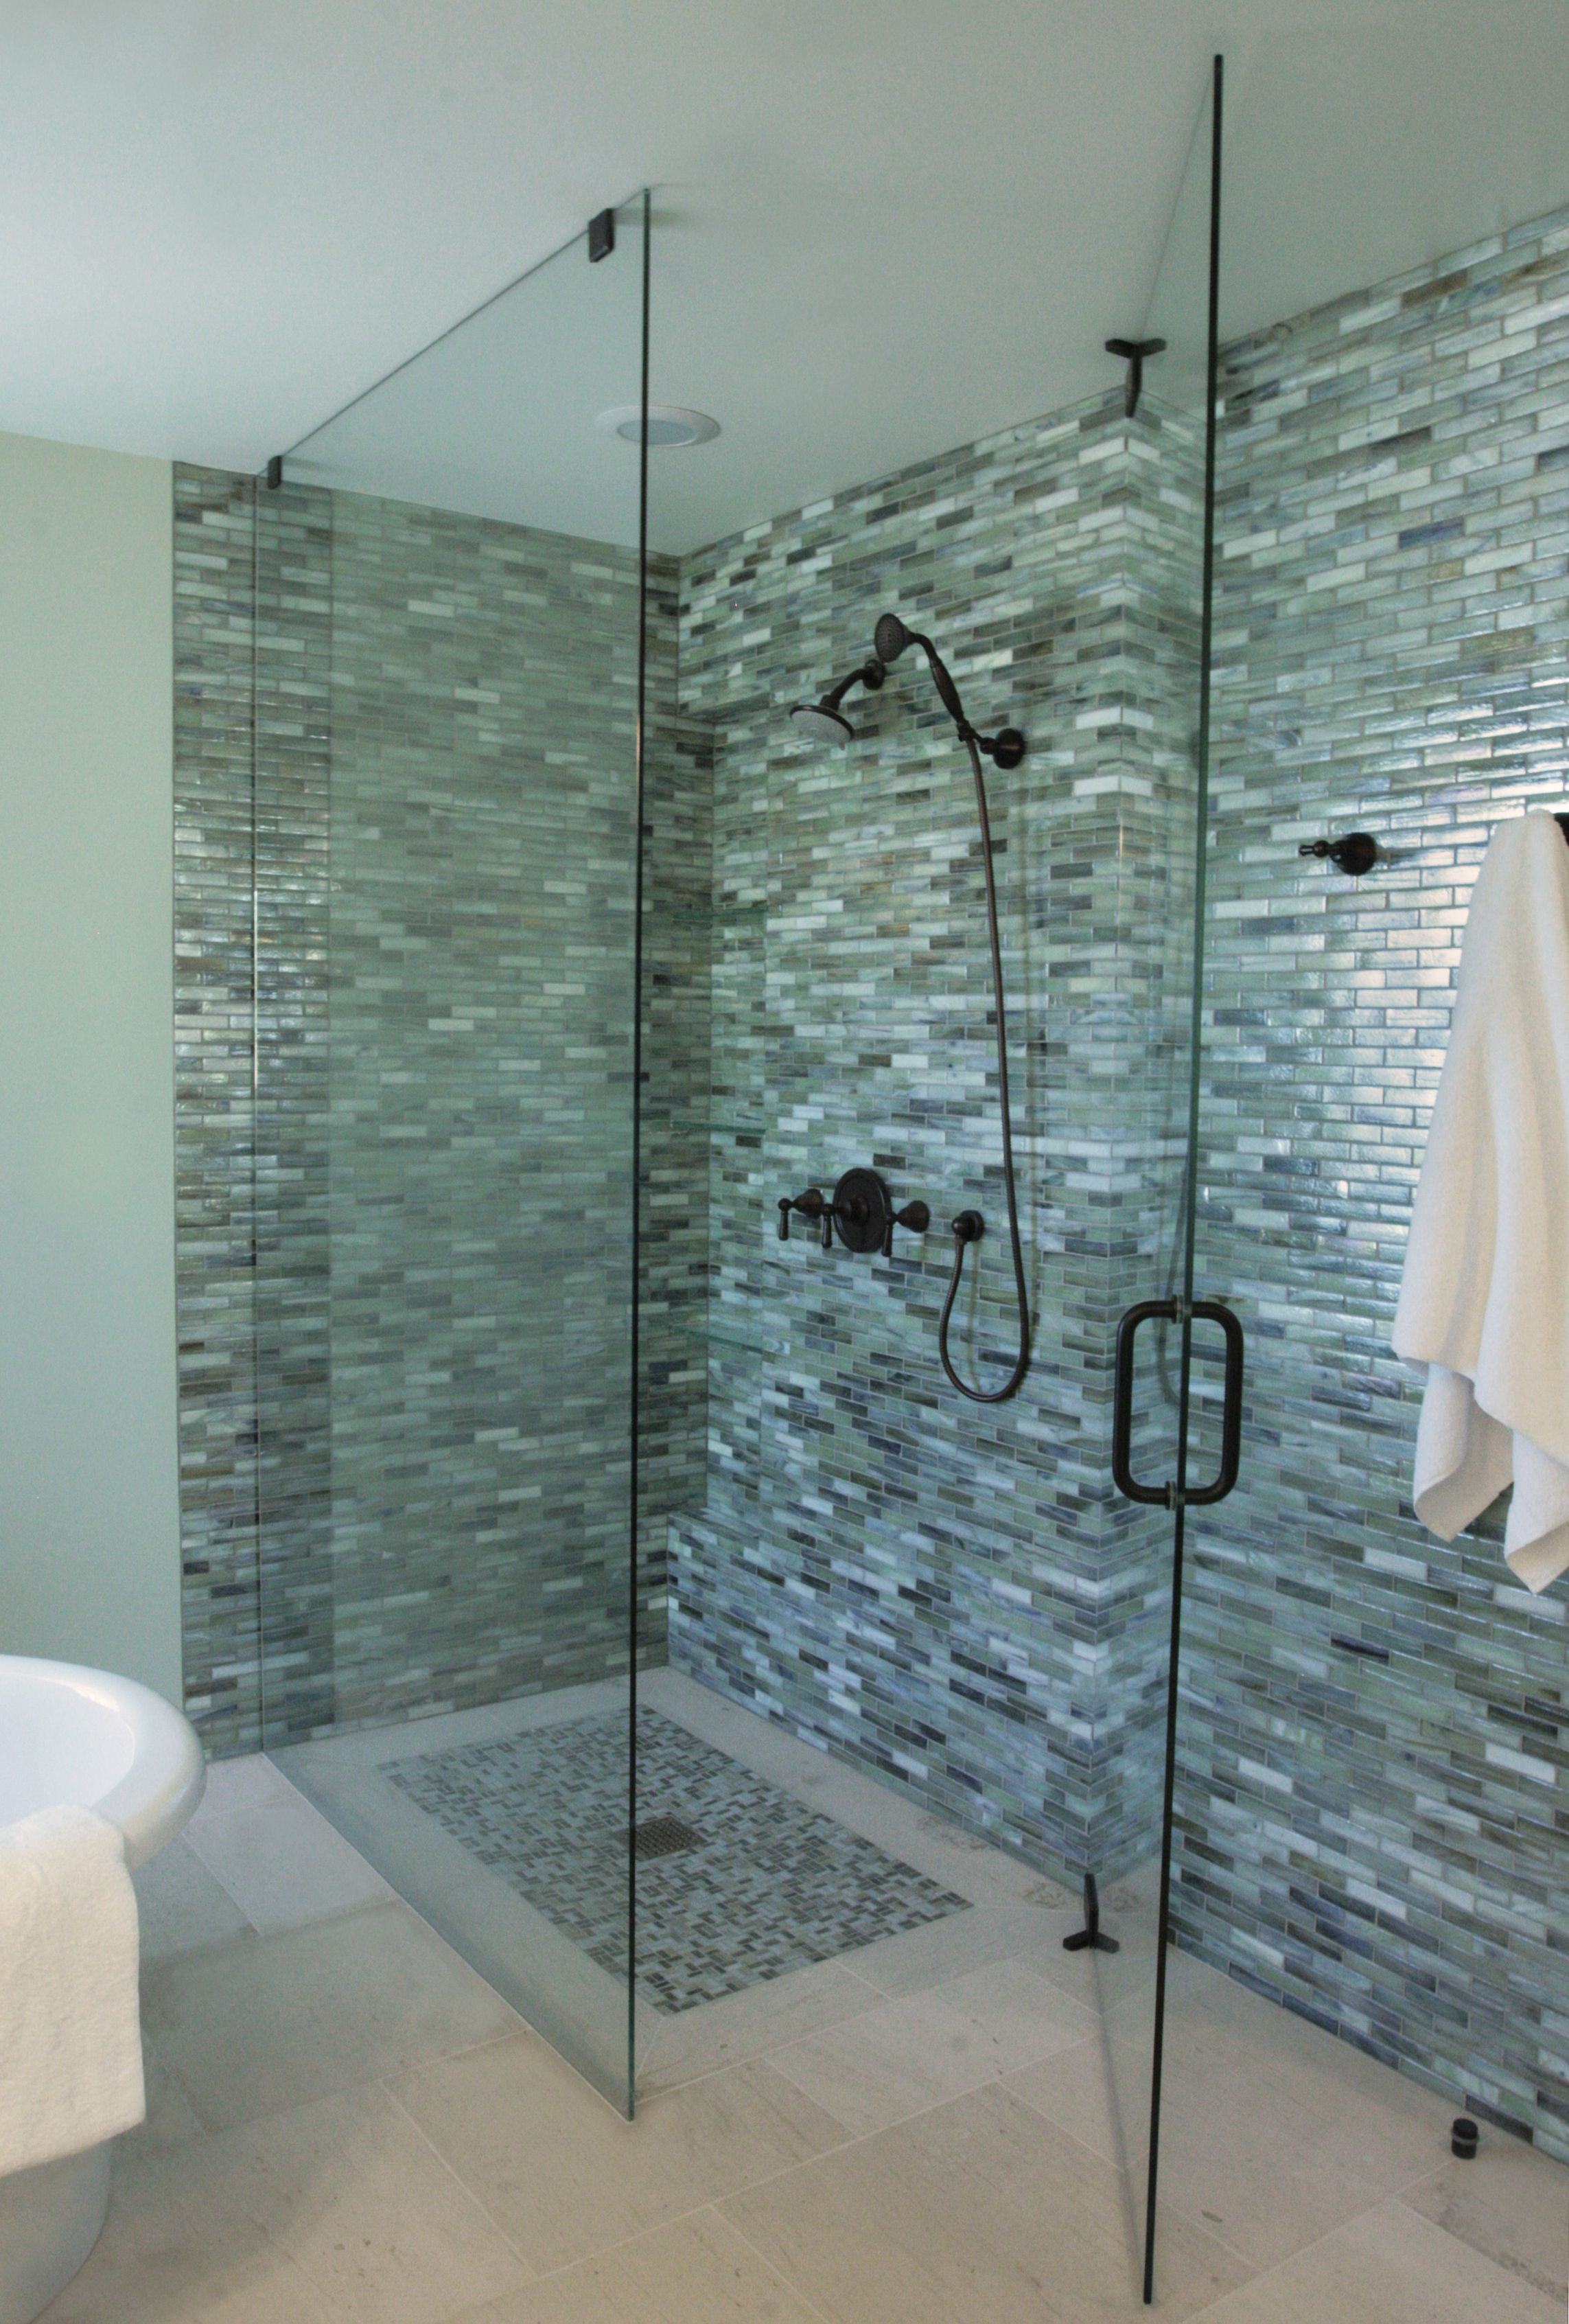 Bathroom Wall Glass Tile Ideas Part - 30: Beautiful Gray Bathroom Glass Tile For Shower Wall With Black Shower And  White Towel And Also Glass Shower Door With Black Handles -